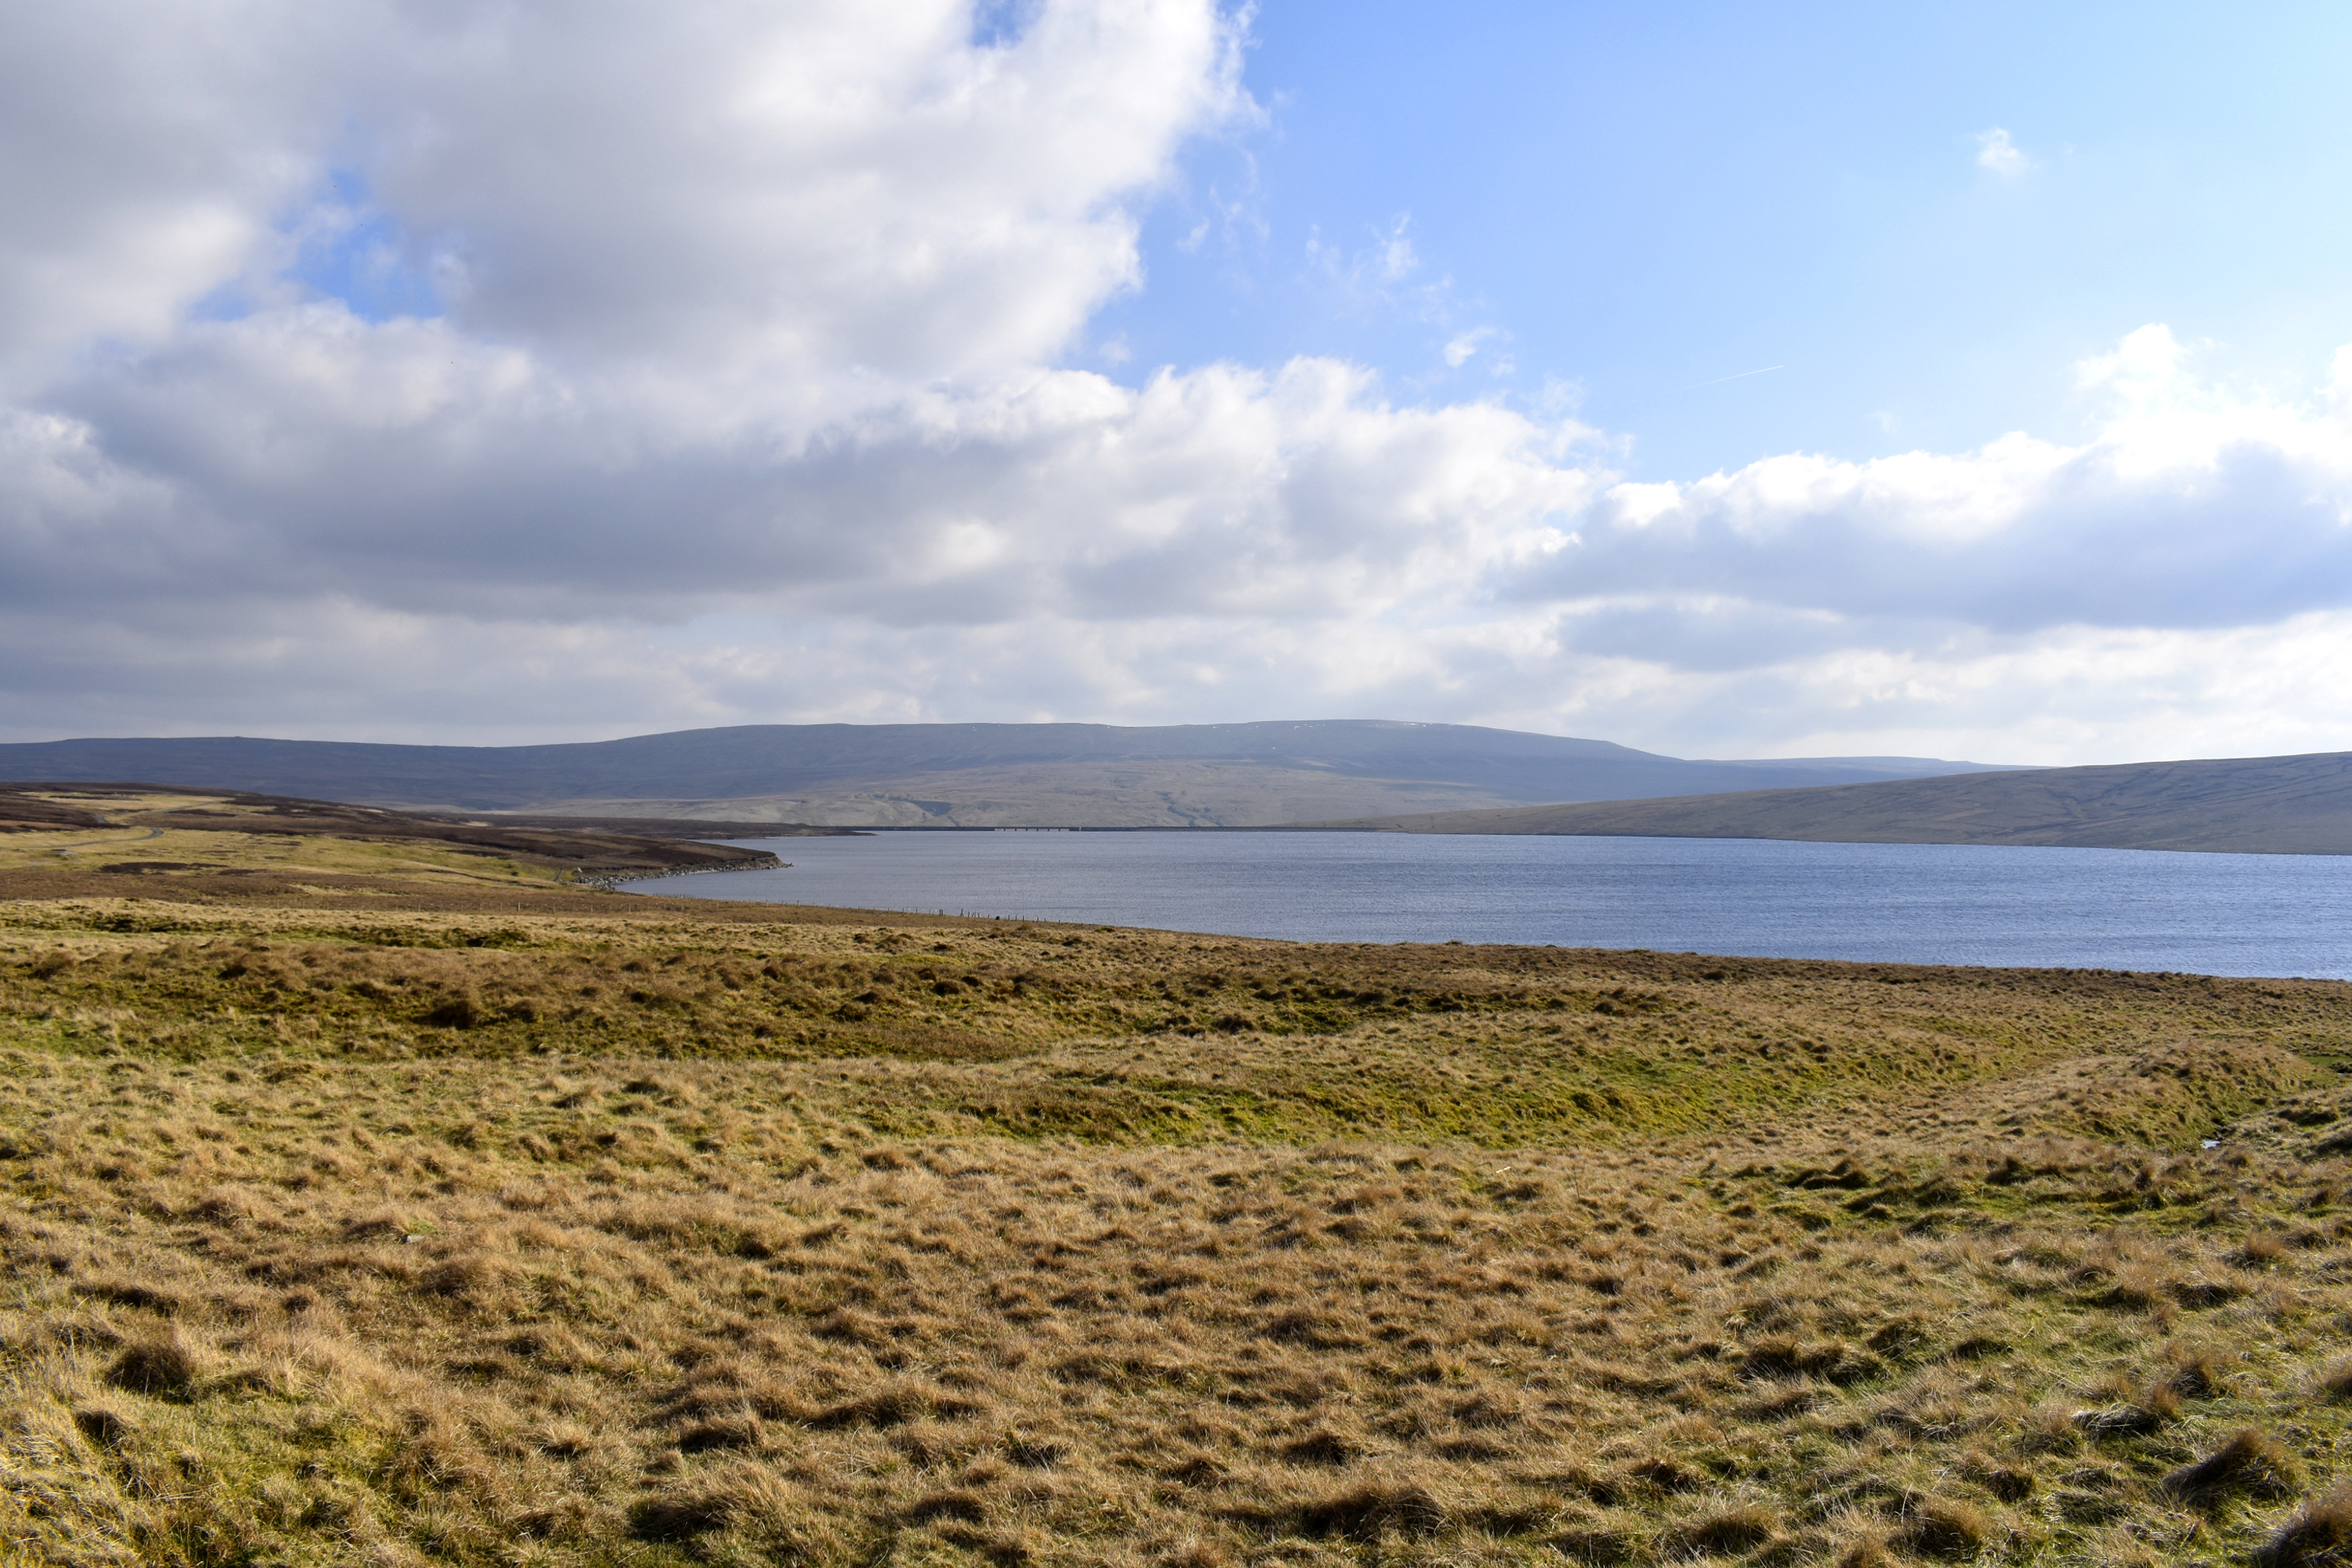 view of large reservoir with dam in the distance on a sunny day with clouds in the sky